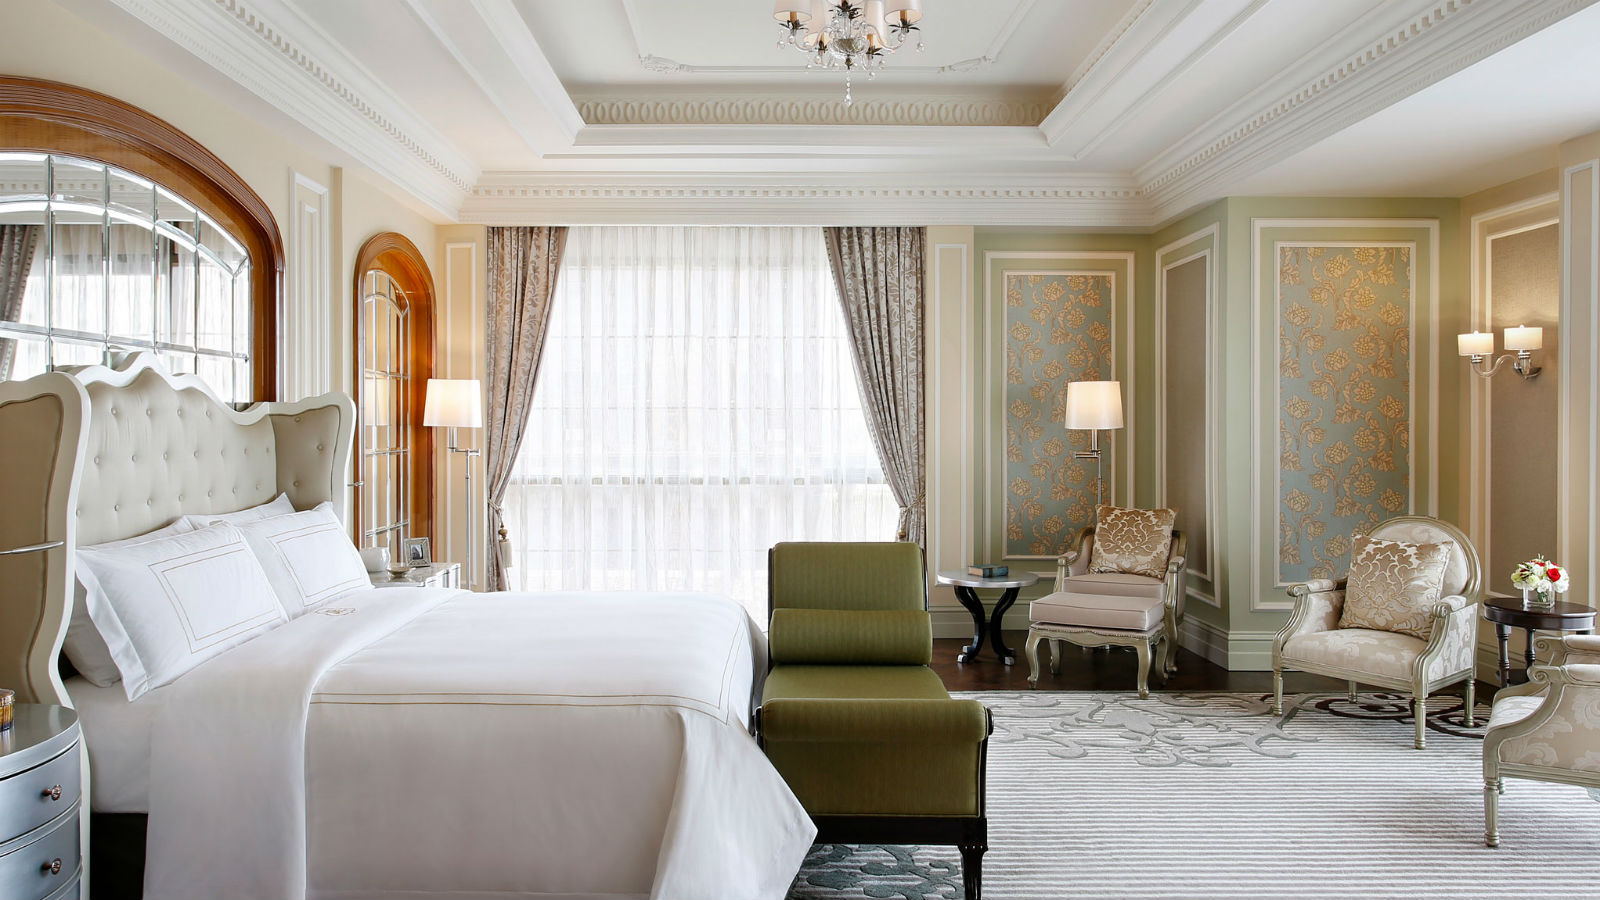 St regis suite at st regis luxury hotel in dubai for Best hotel rooms in dubai